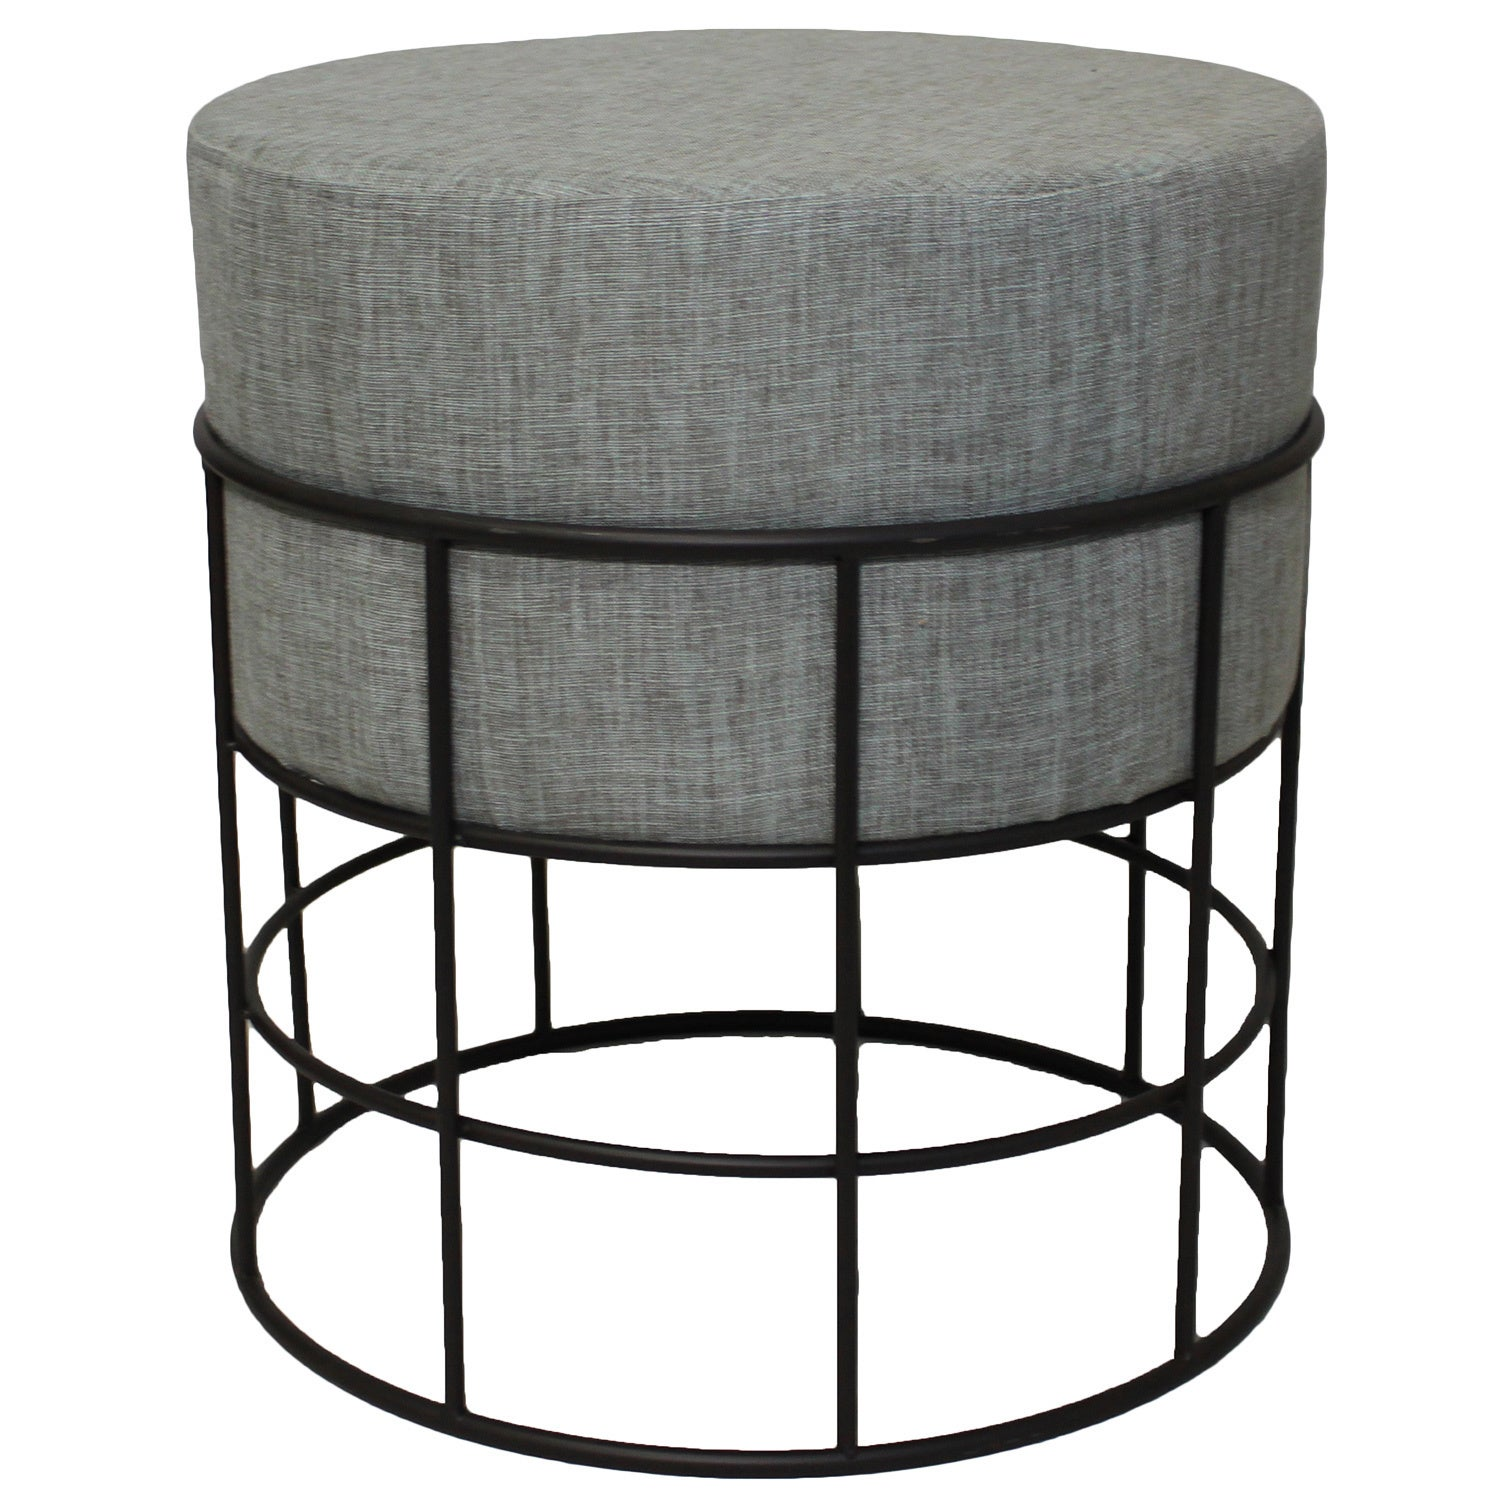 Super Modern Designs Indoor Outdoor Round Metal And Fabric Ottoman Caraccident5 Cool Chair Designs And Ideas Caraccident5Info